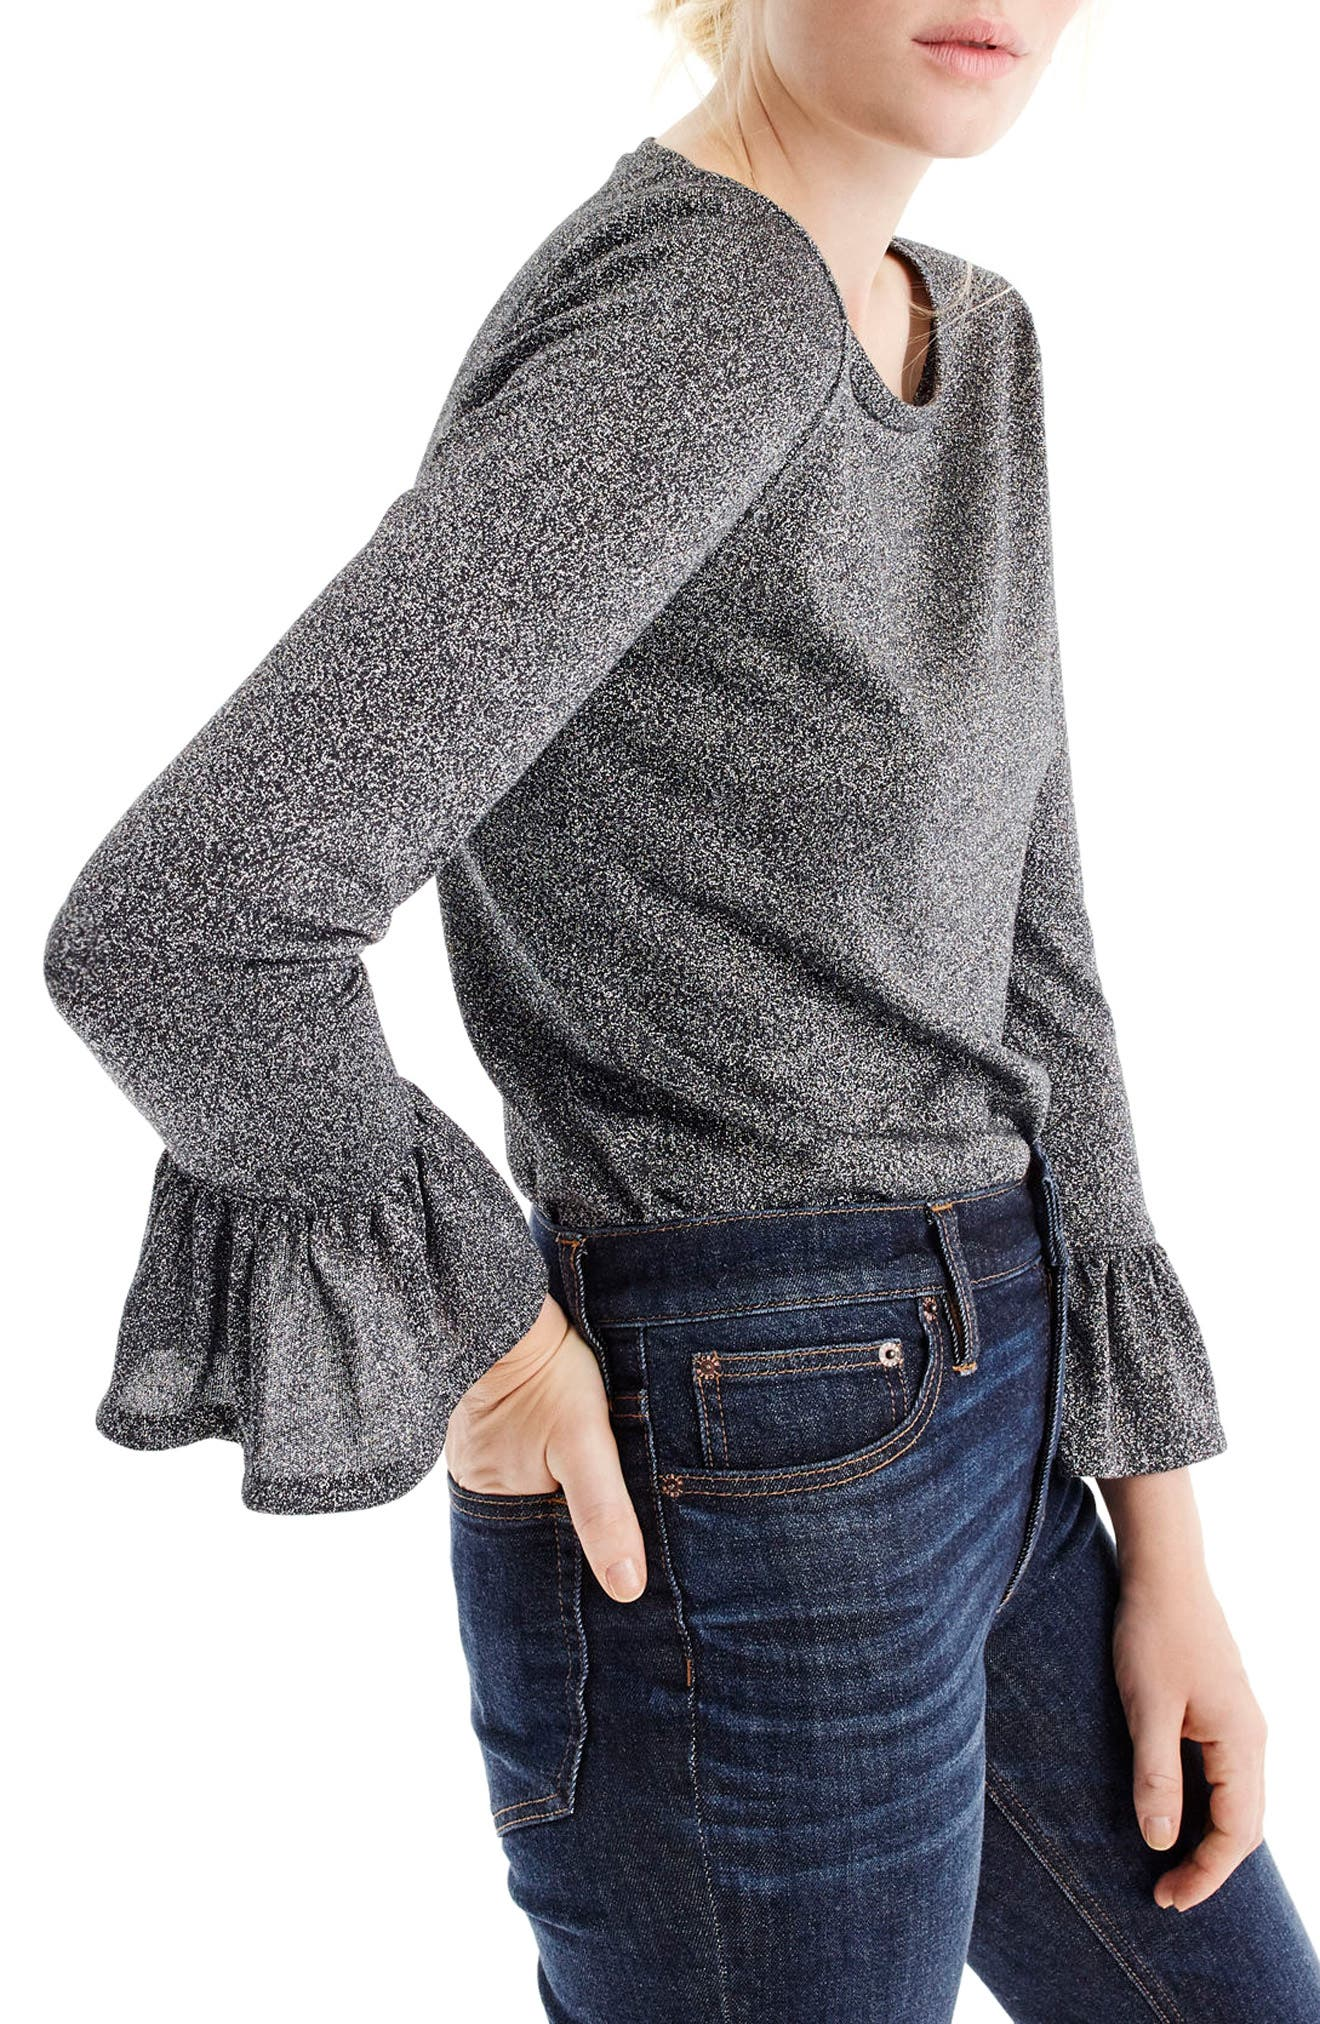 J.Crew Bell Sleeve Sparkle Top,                             Main thumbnail 1, color,                             Heather Charcoal